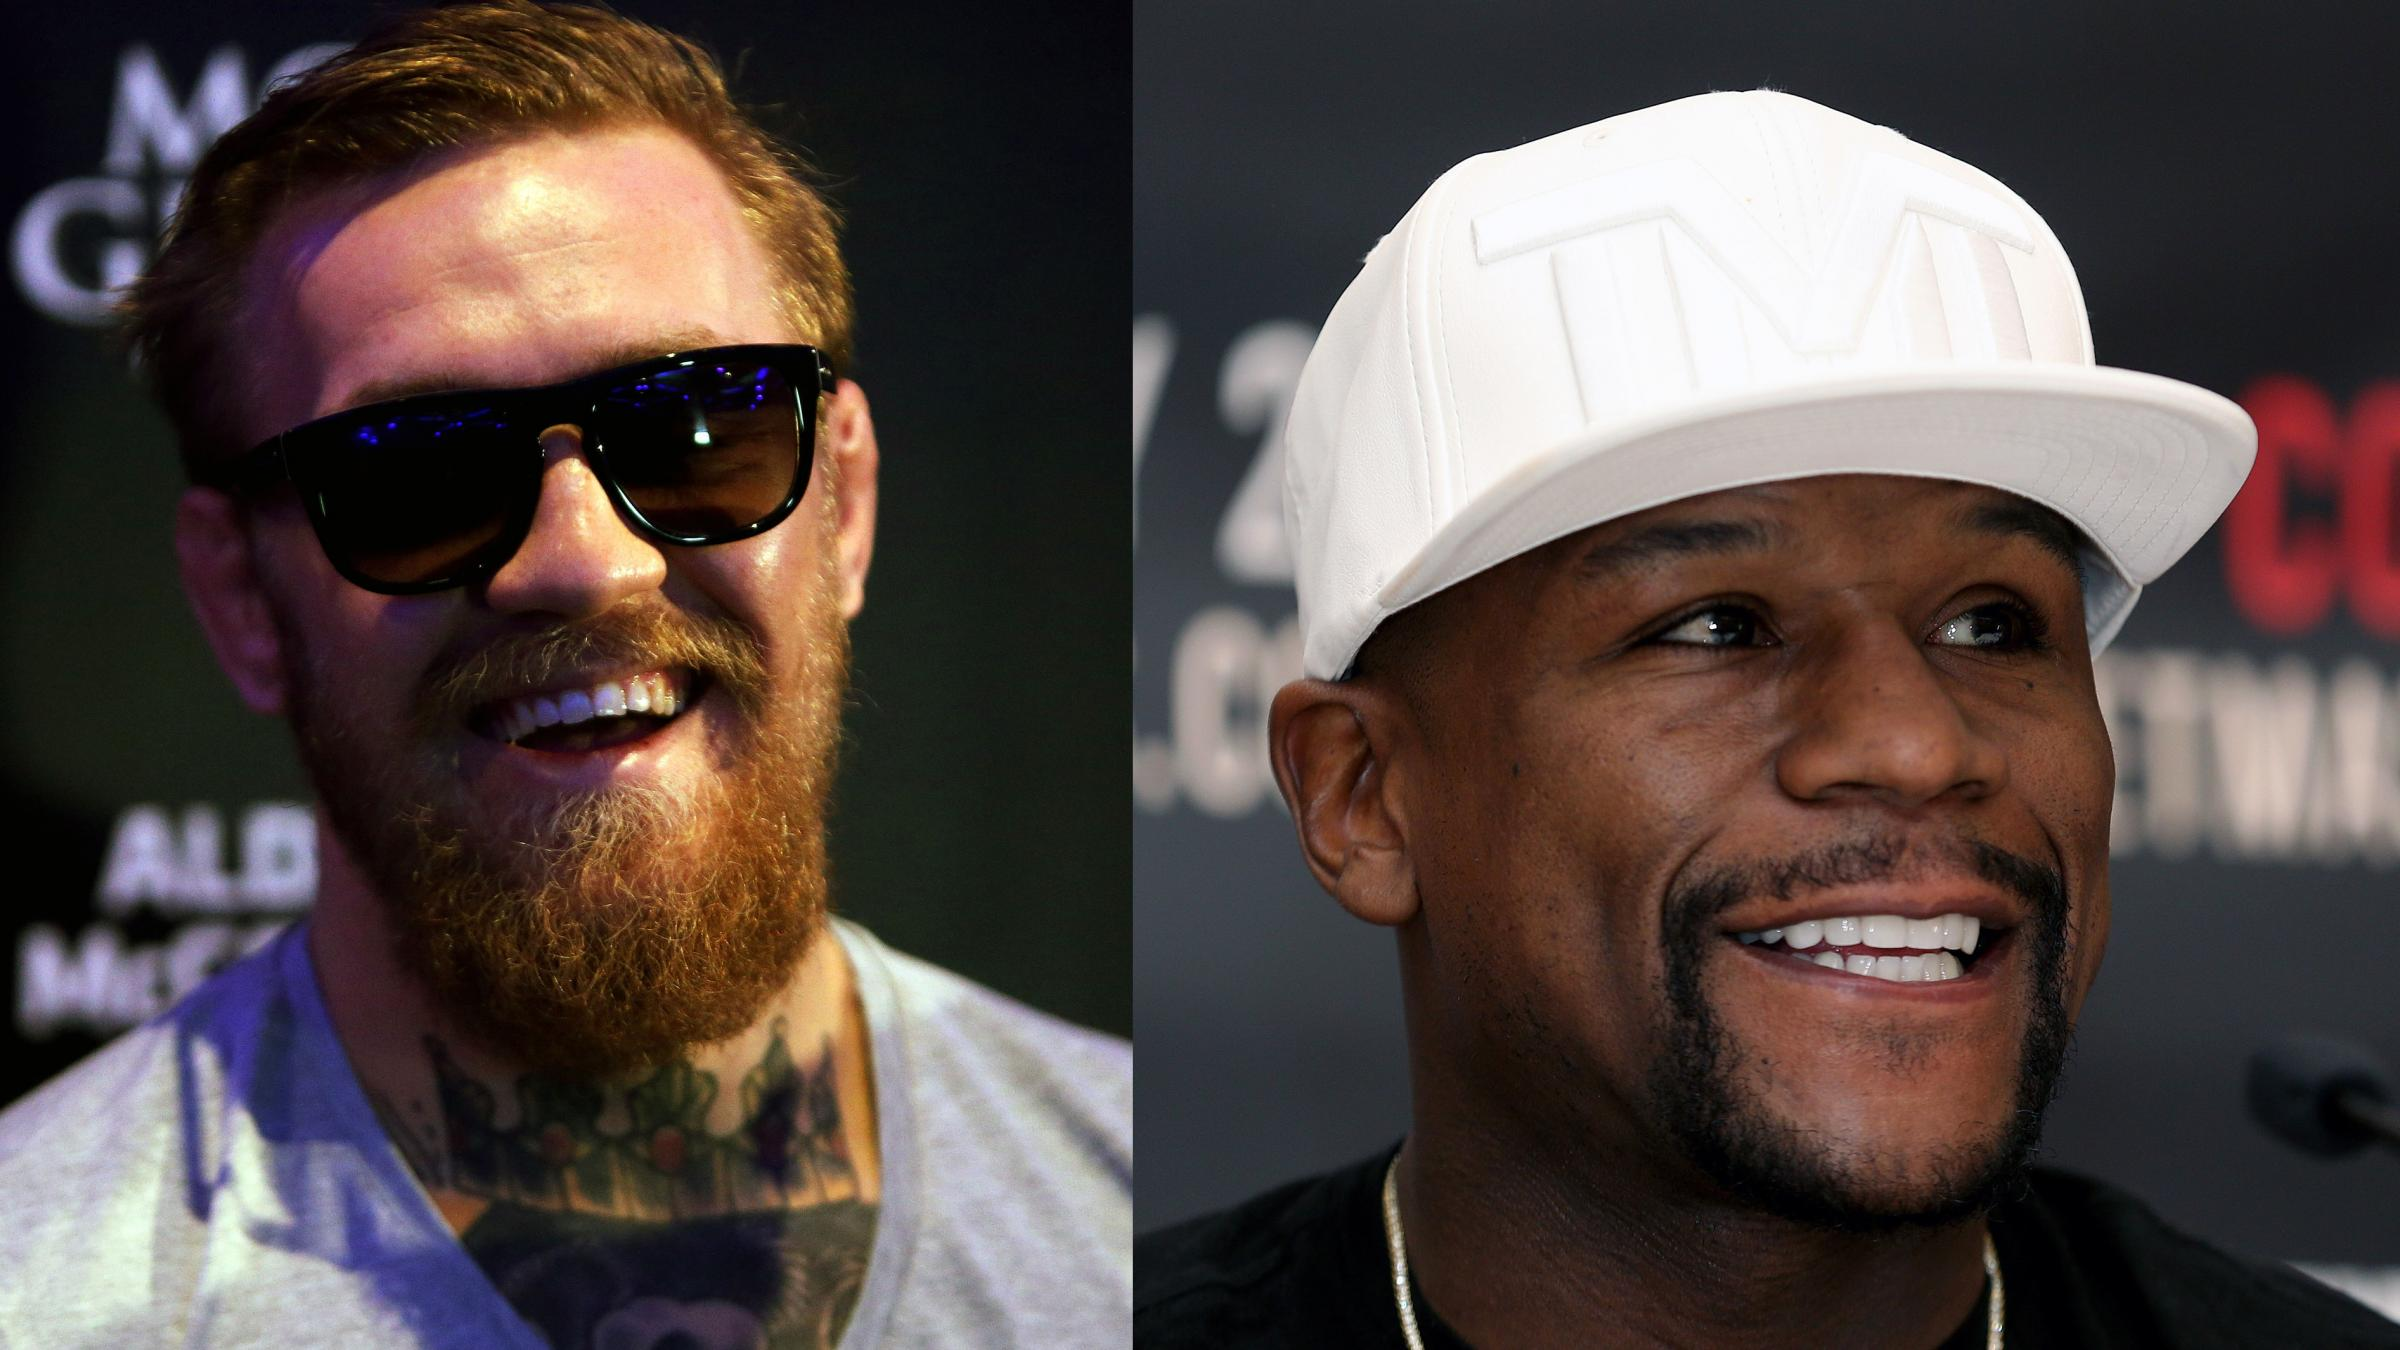 McGregor vs Mayweather Set To Officially Fight August 26